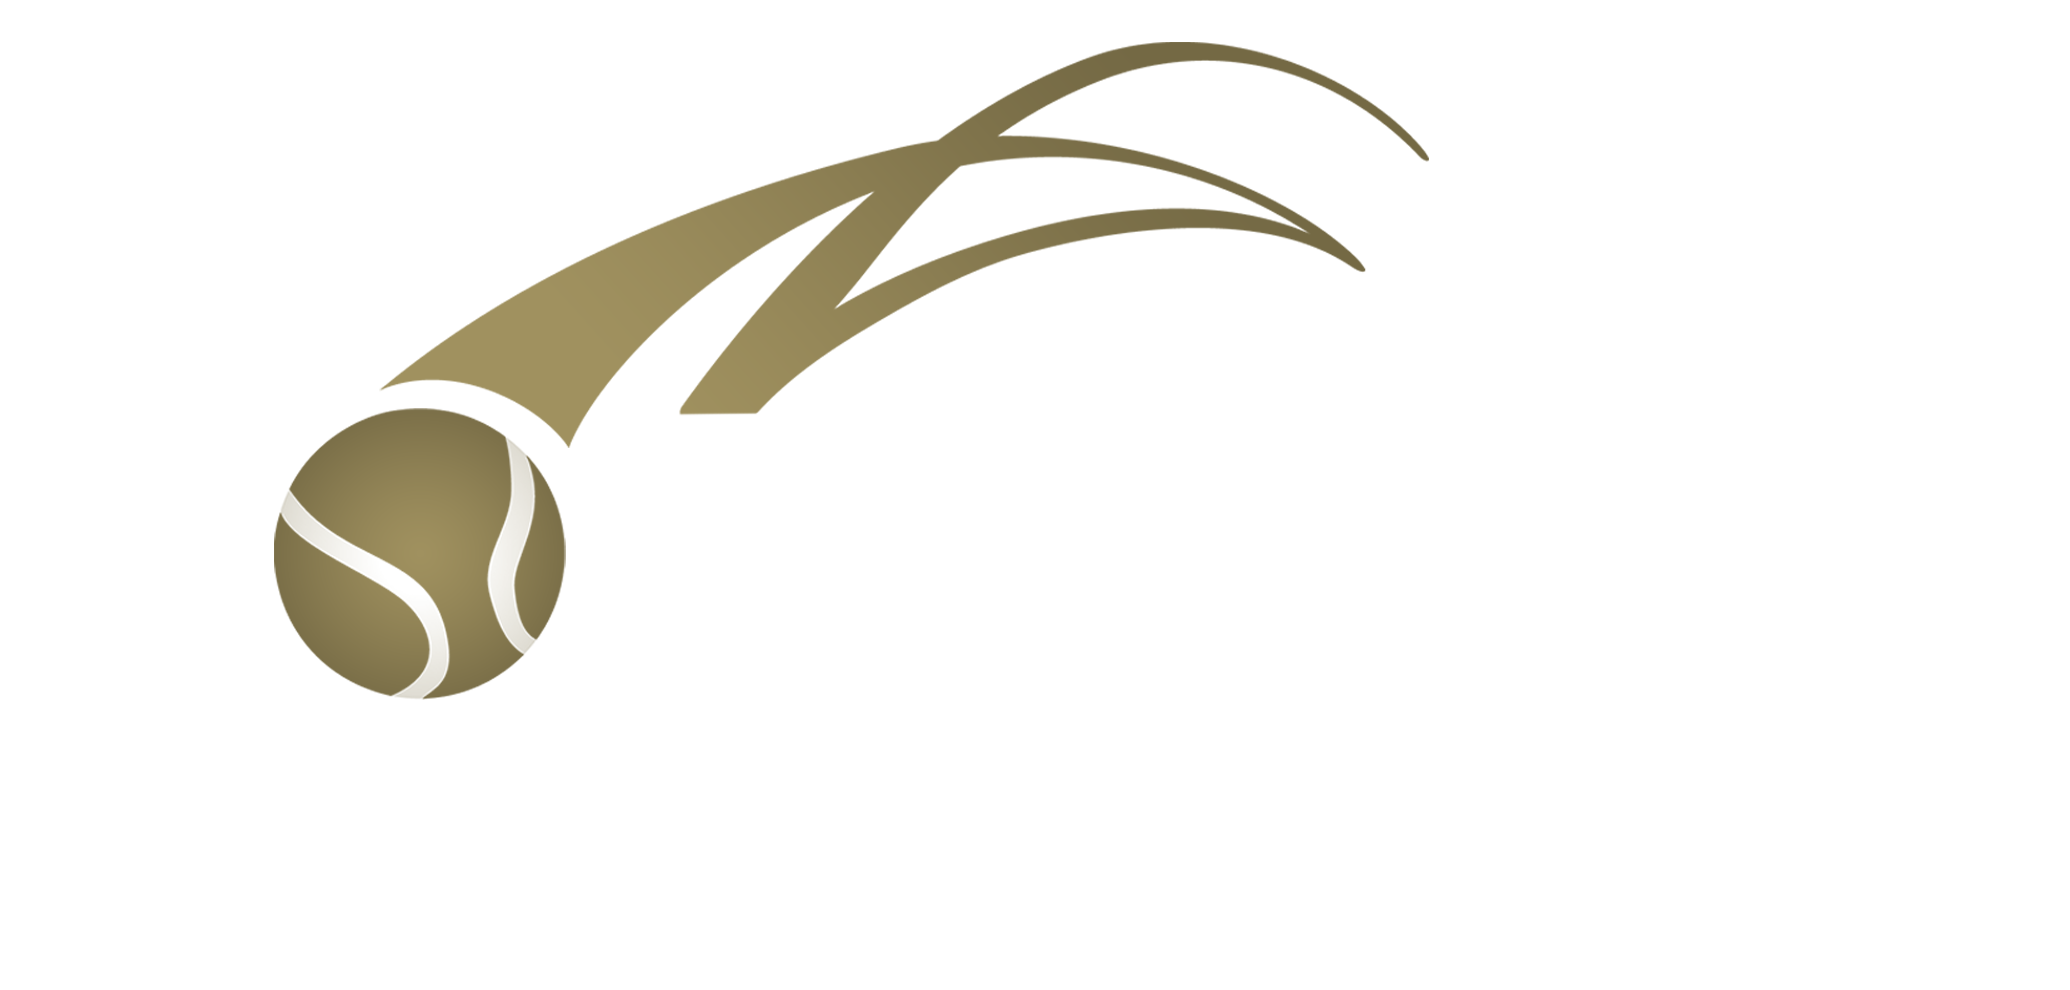 Gold Coast Tennis Academy